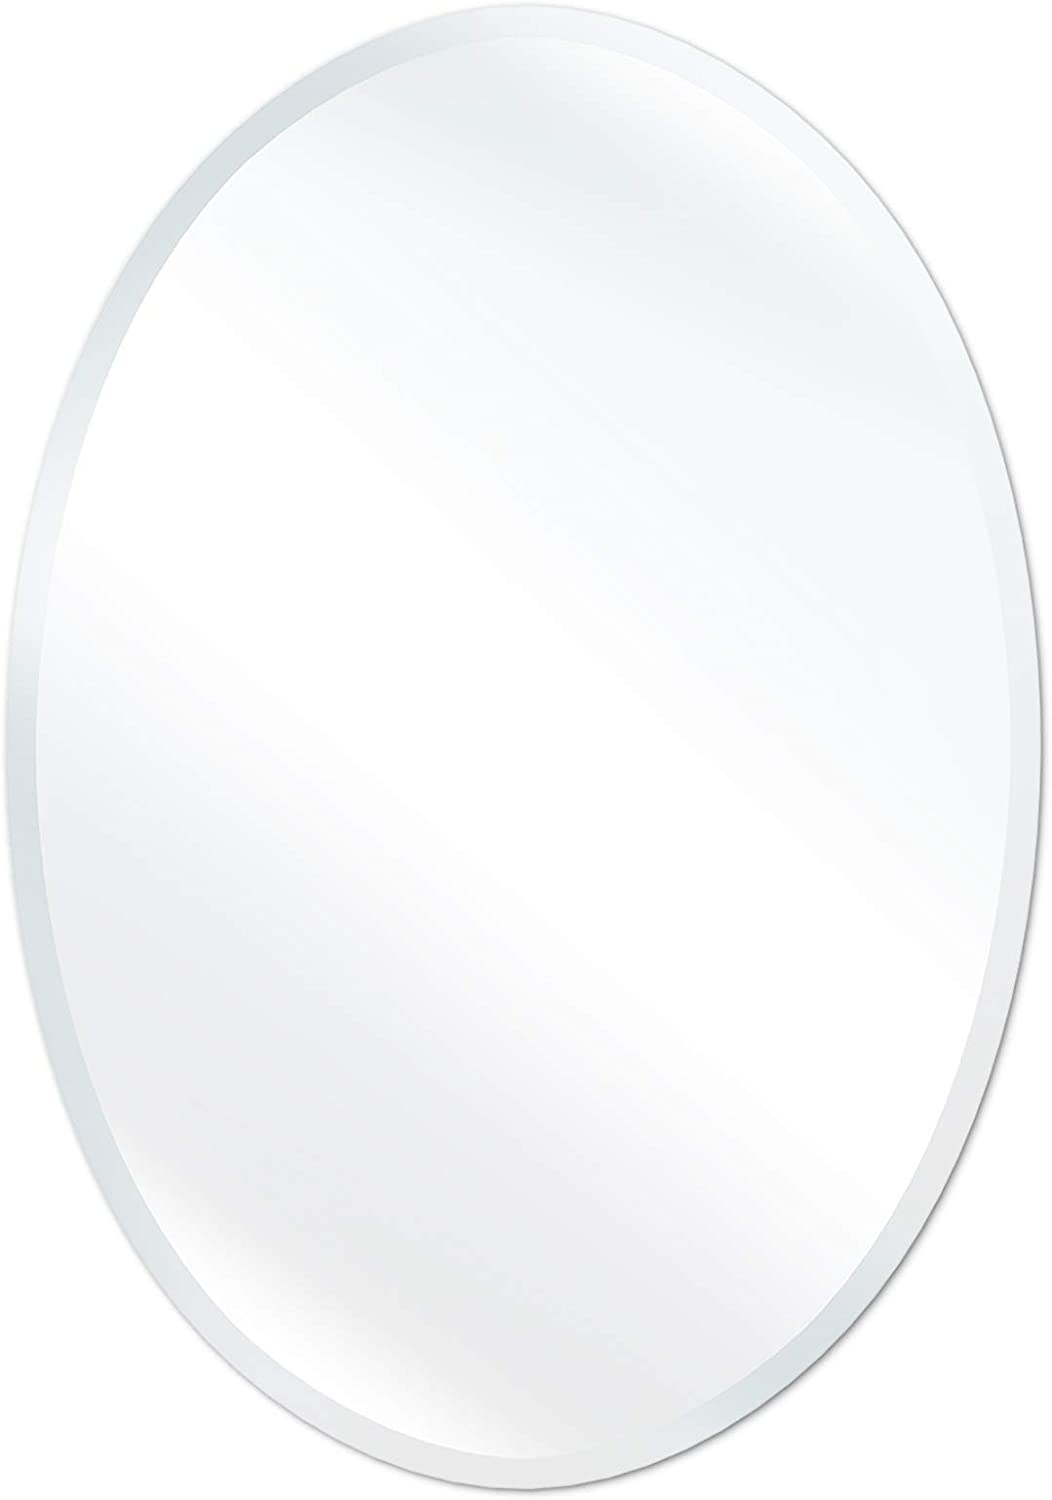 """SHINESTAR 20 x 28"""" Oval Mirror with Beveled Edge, Modern Frameless Bathroom Mirror for Wall, Home Decor, Vertical Hanging"""